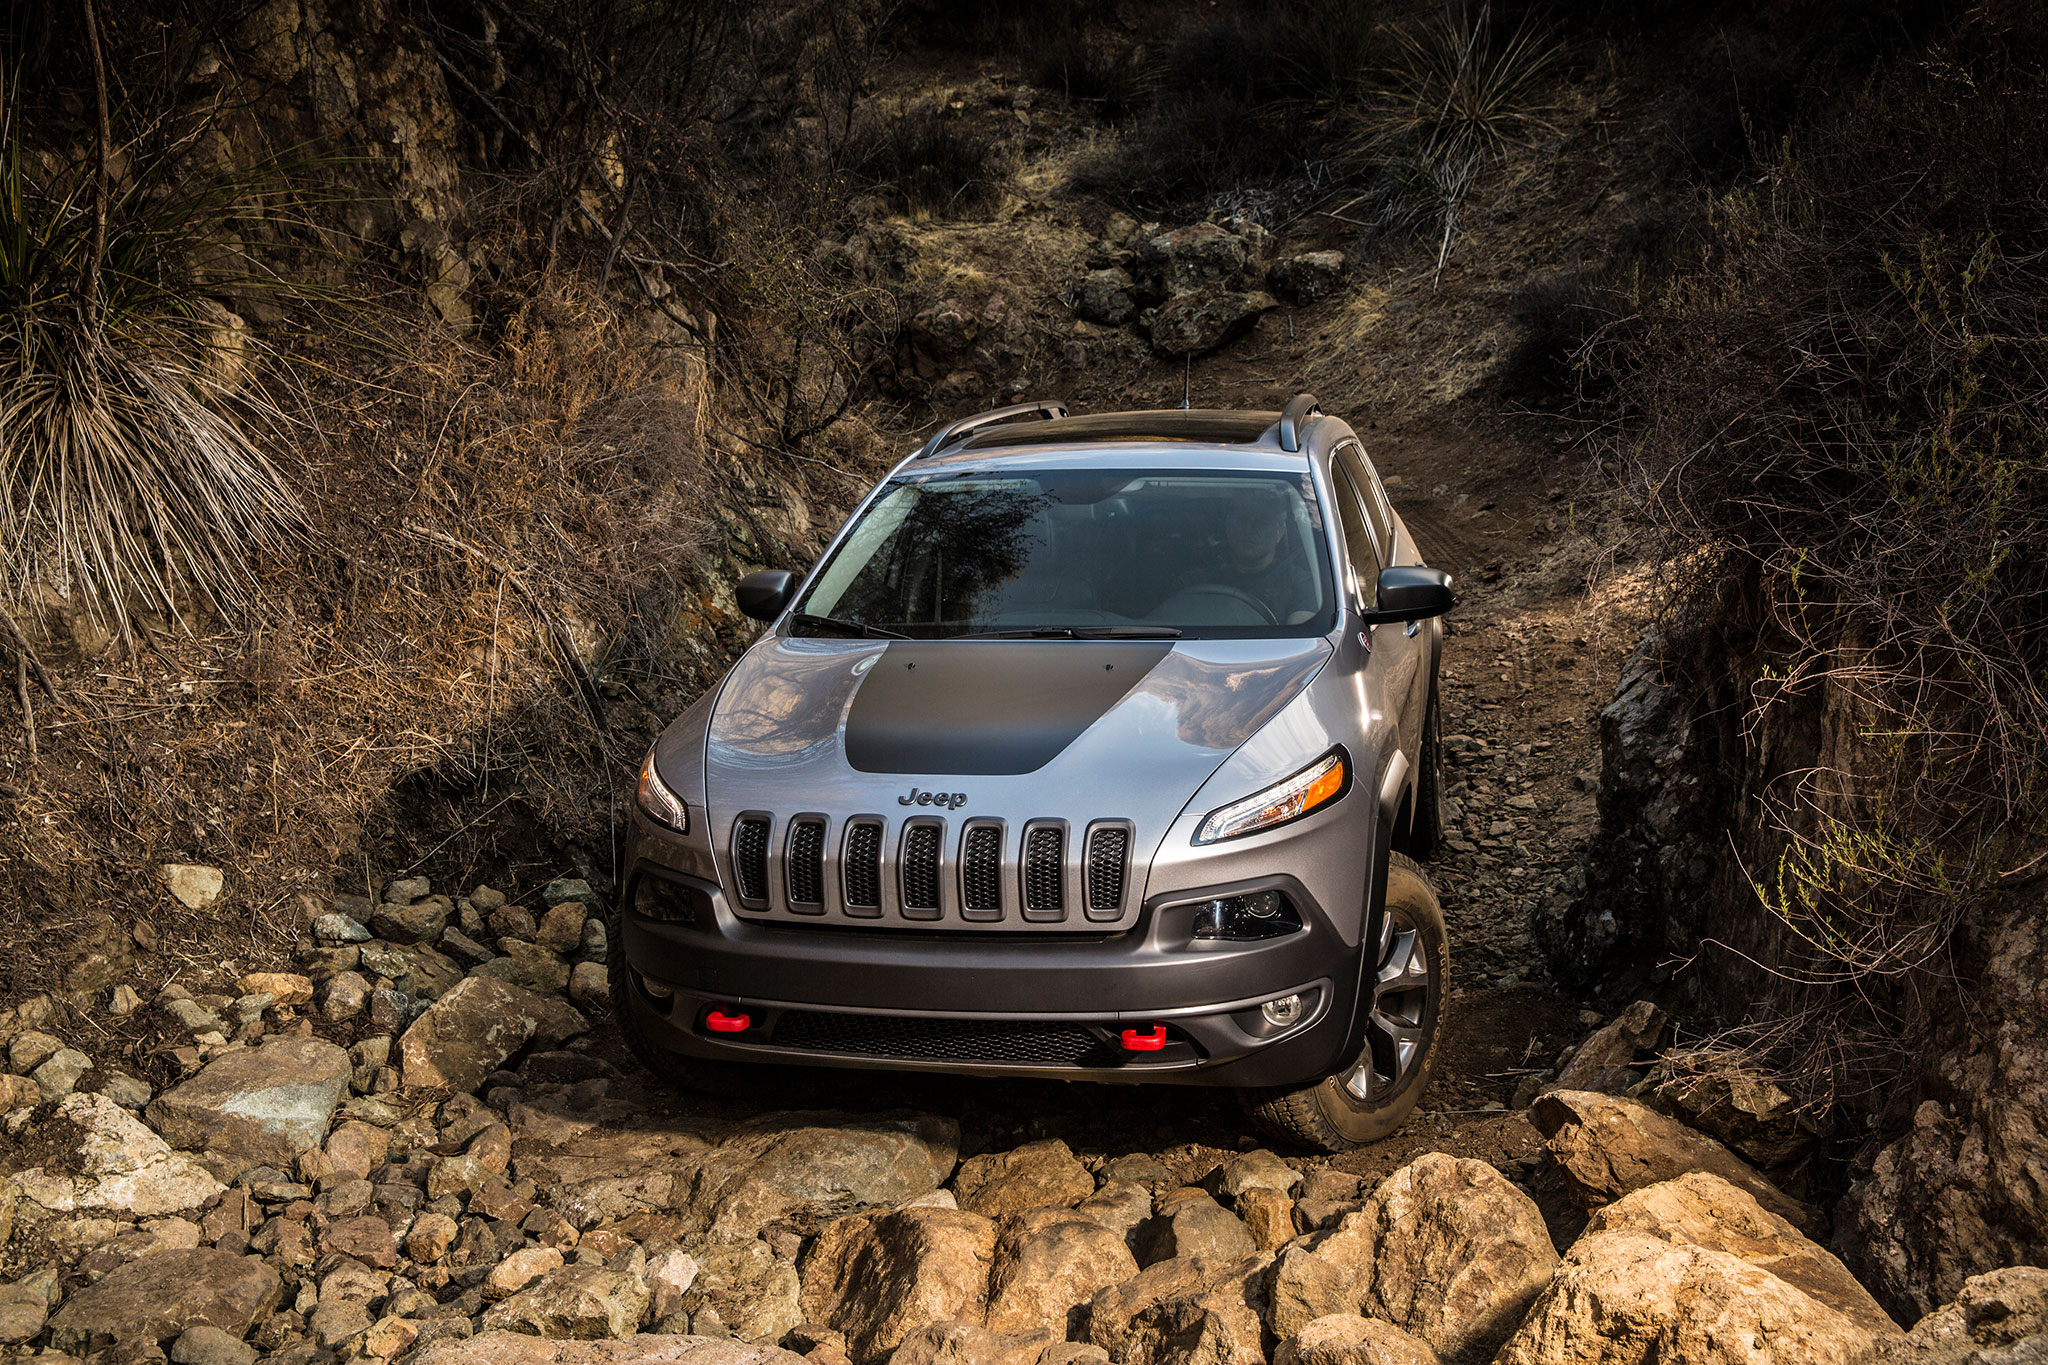 2014 Jeep Cherokee Not Recommended By Consumer Reports Motortrend